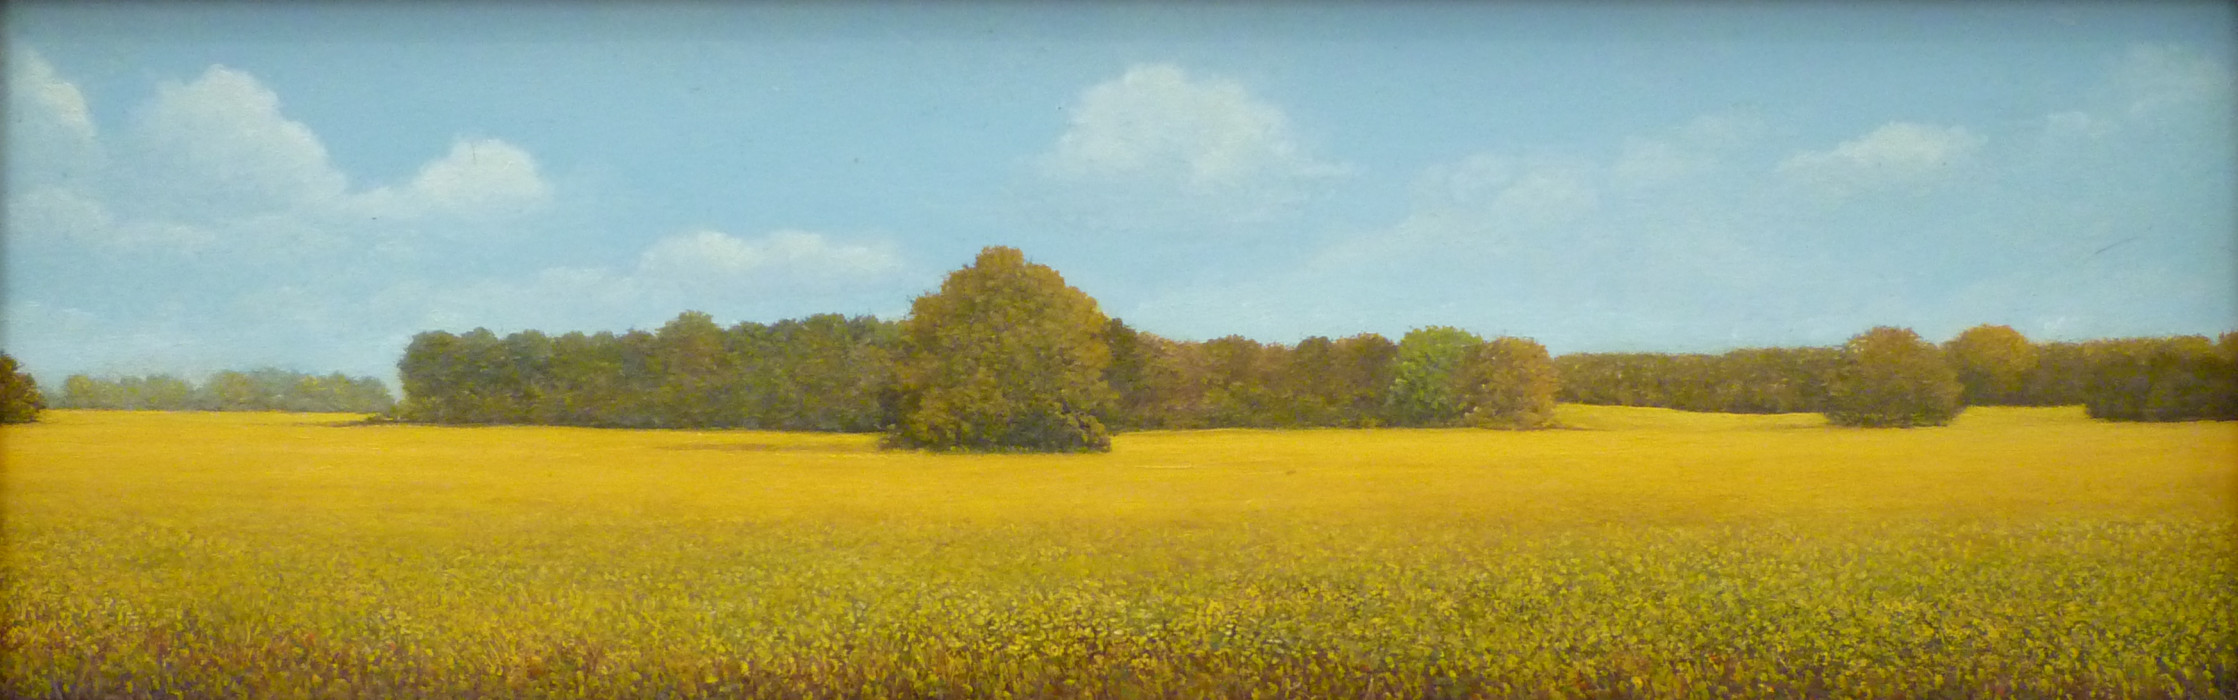 Robert Van Meter, Fall Field, oil on board, 3 x 13 inches